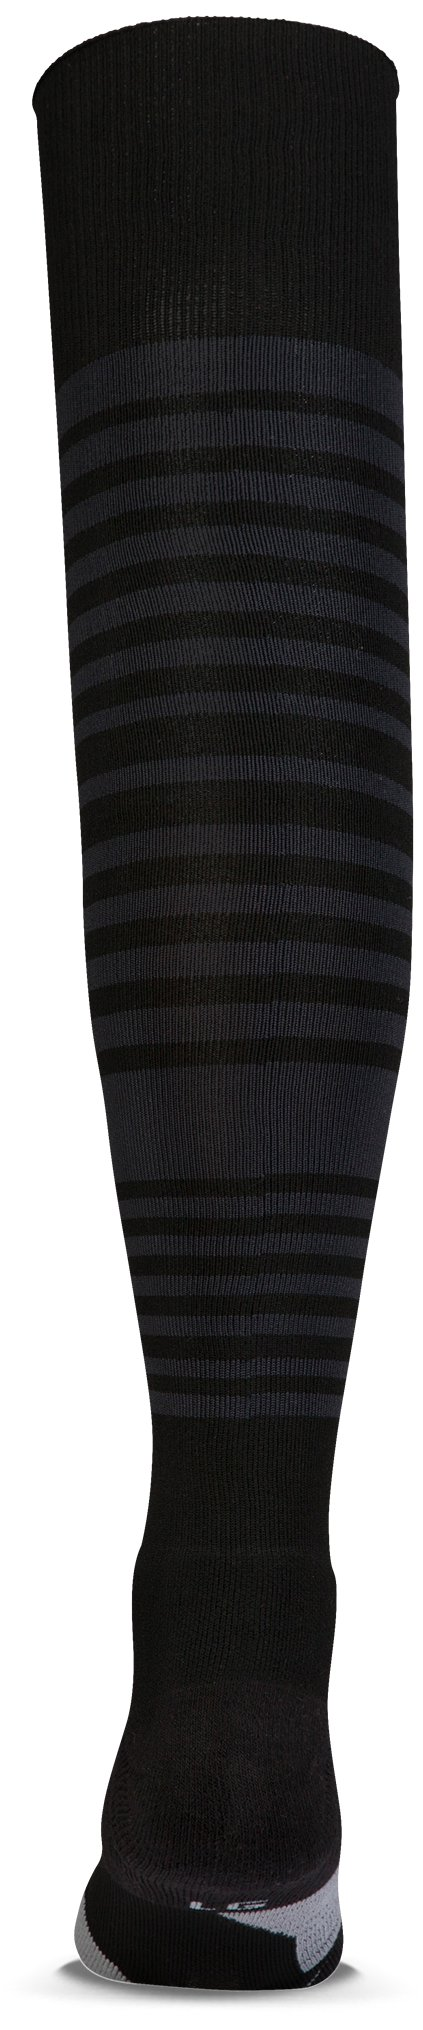 UA Global Performance Over-The-Calf Soccer Socks, Black , undefined